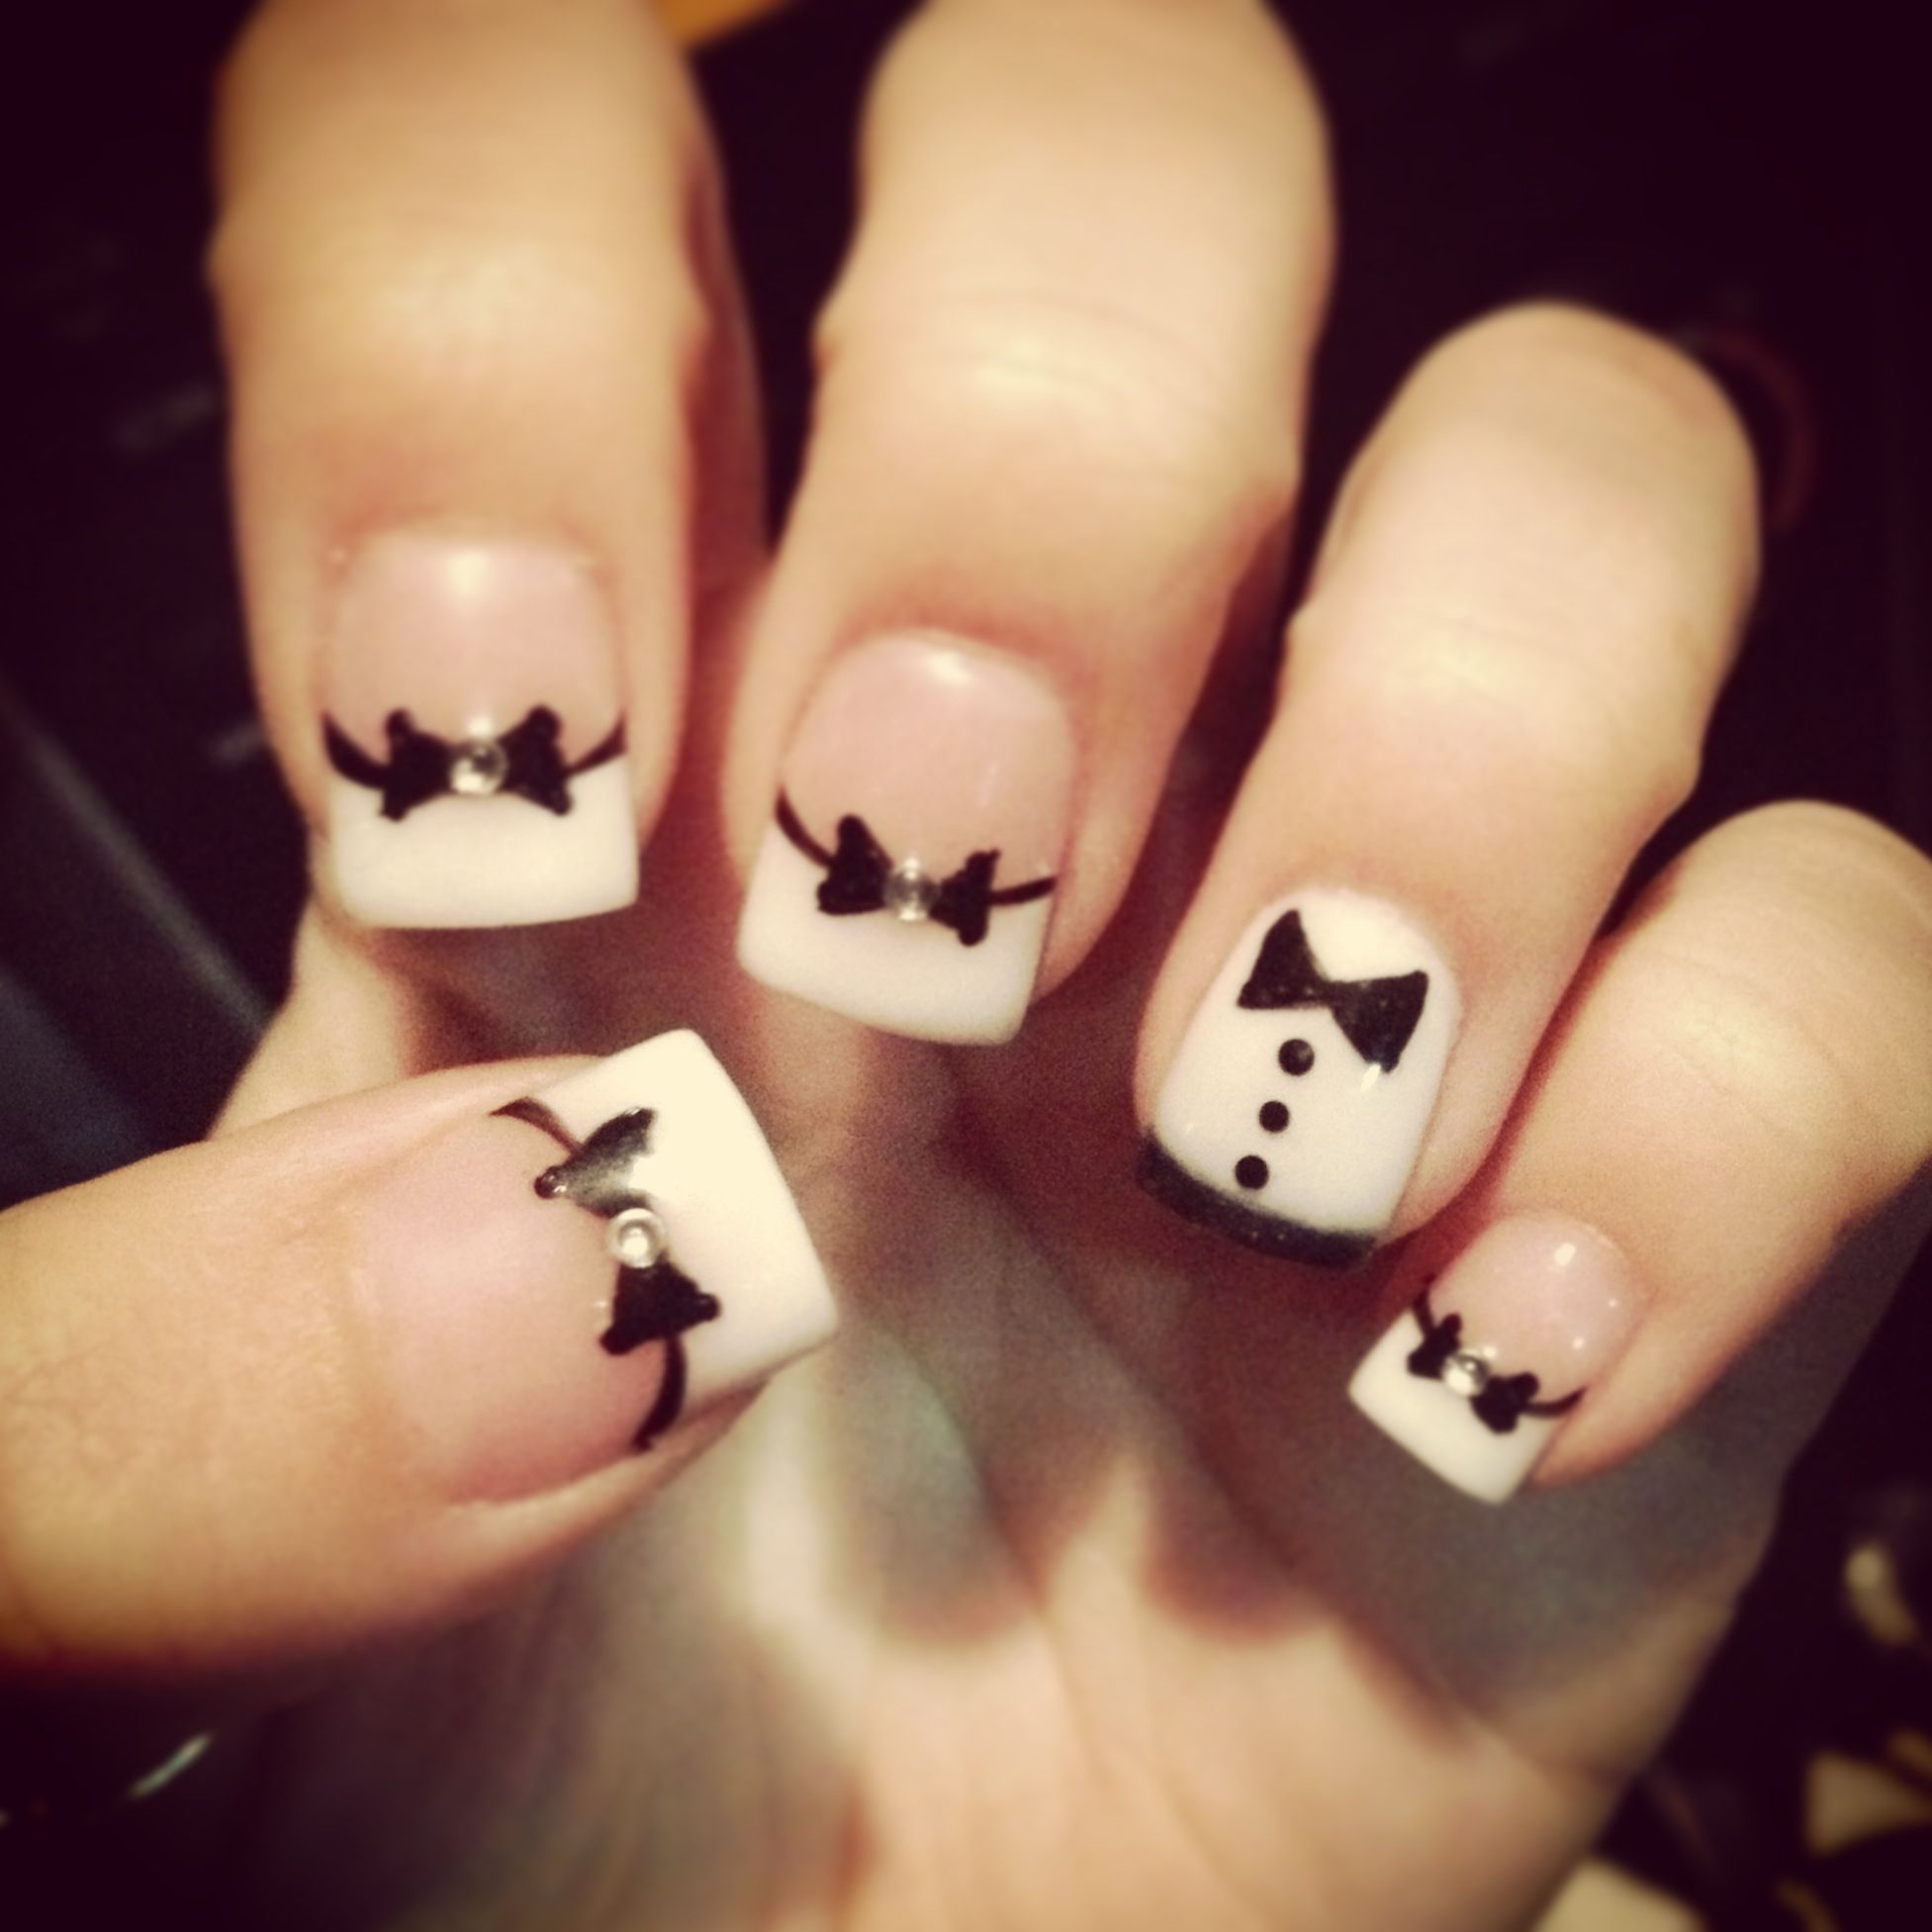 Bow Tie Tuxedo Acrylic Nail Design Cute Get The Suit And Tie